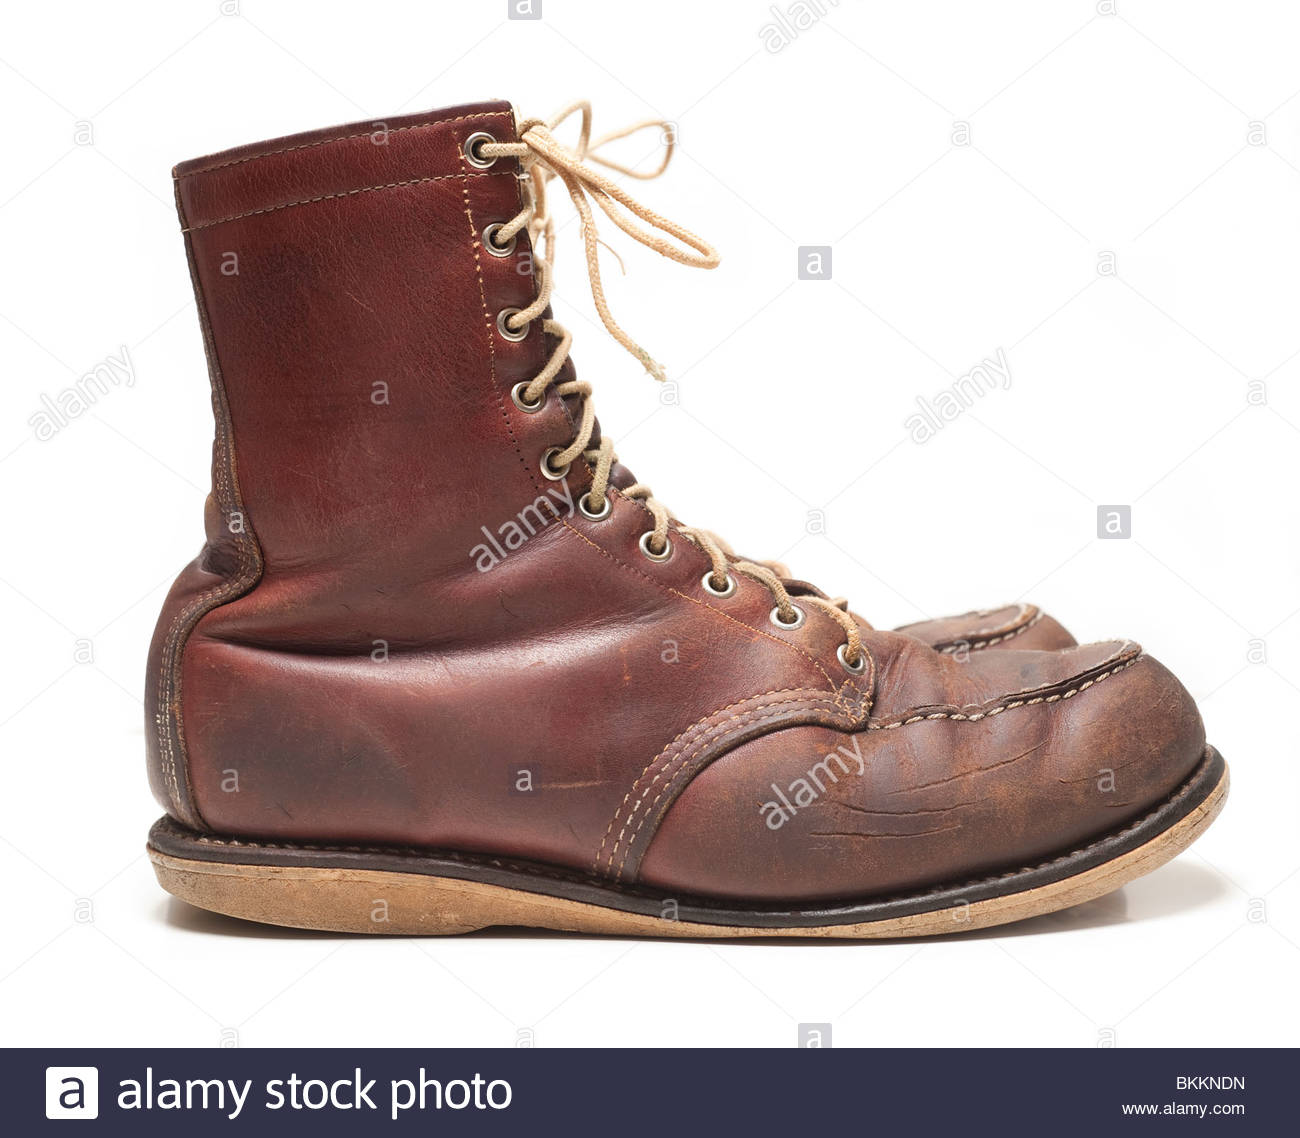 3f37325098f6b Vintage Boots Stock Photos & Vintage Boots Stock Images - Alamy